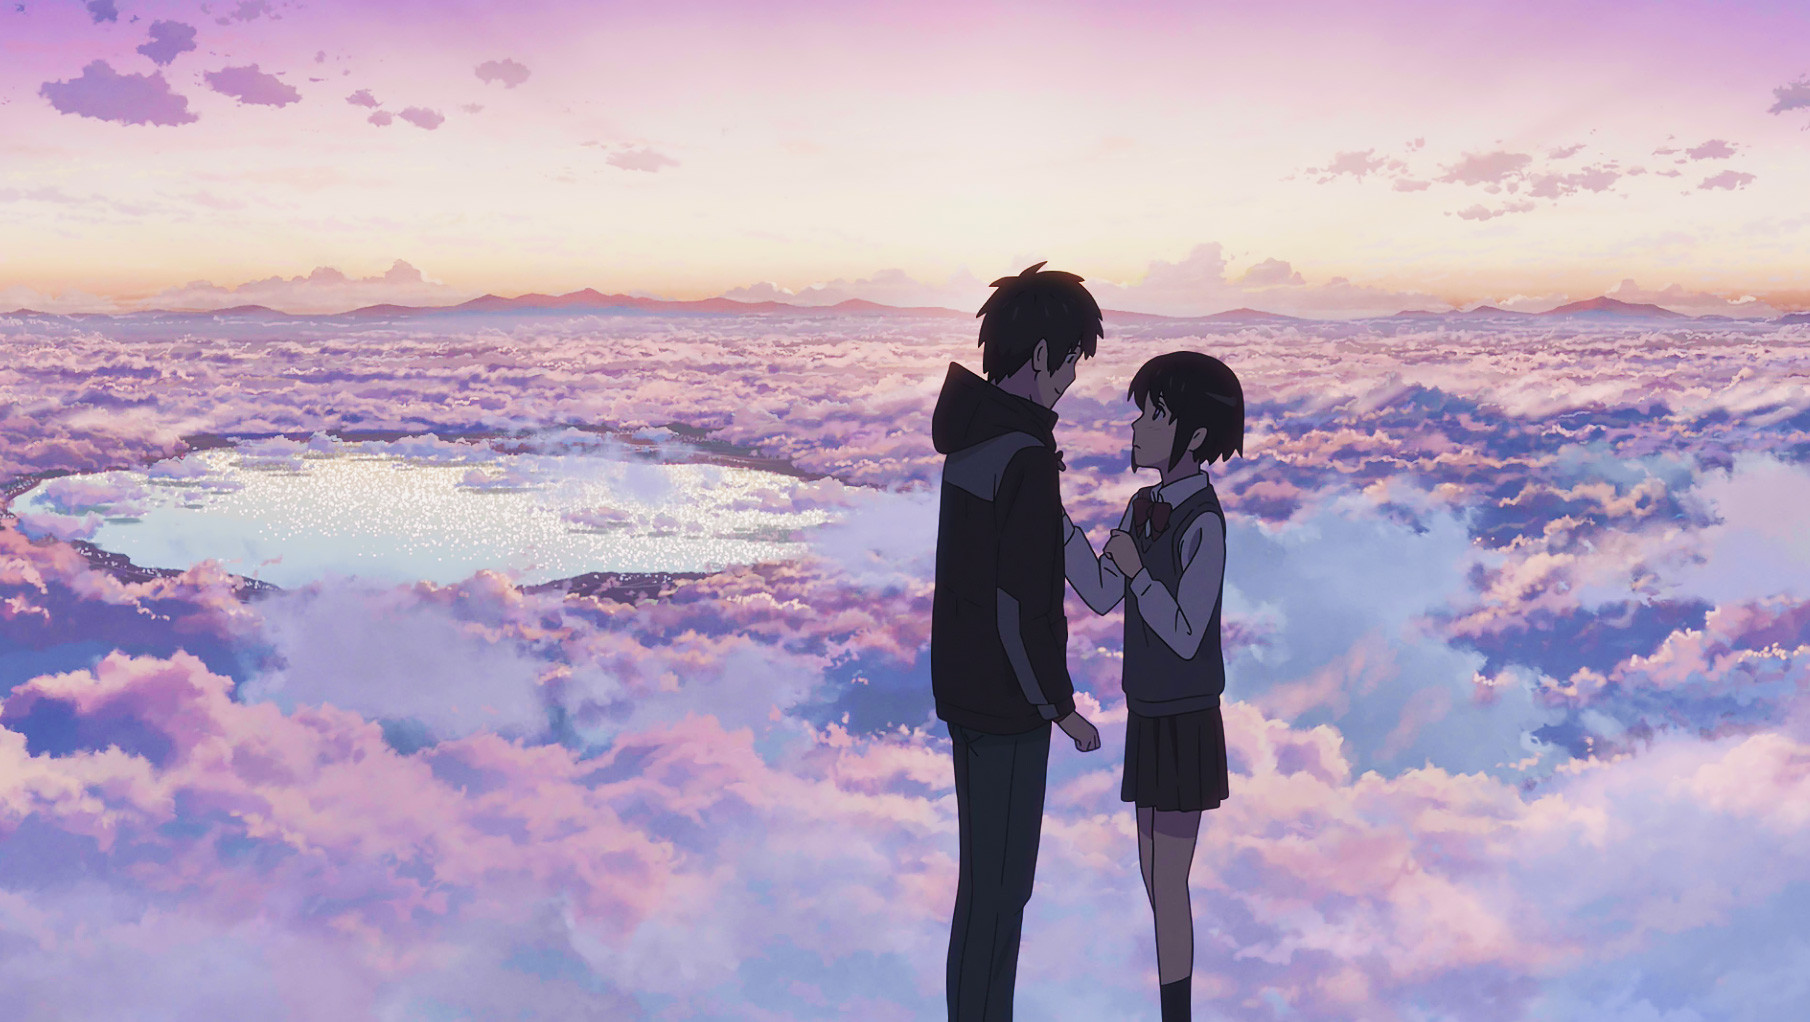 your name characters in clouds